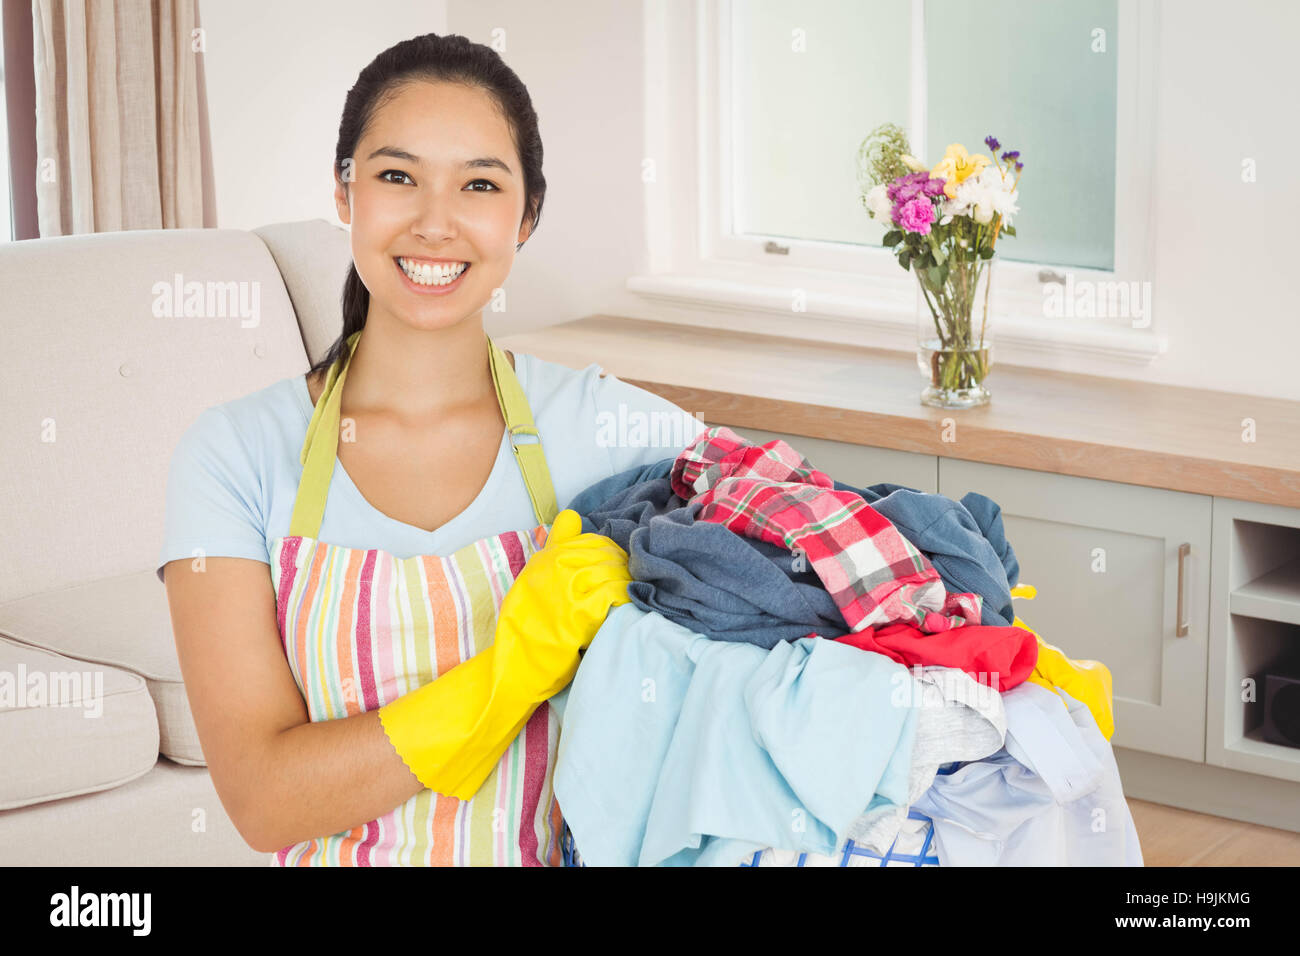 Composite image of laughing woman holding laundry basket - Stock Image